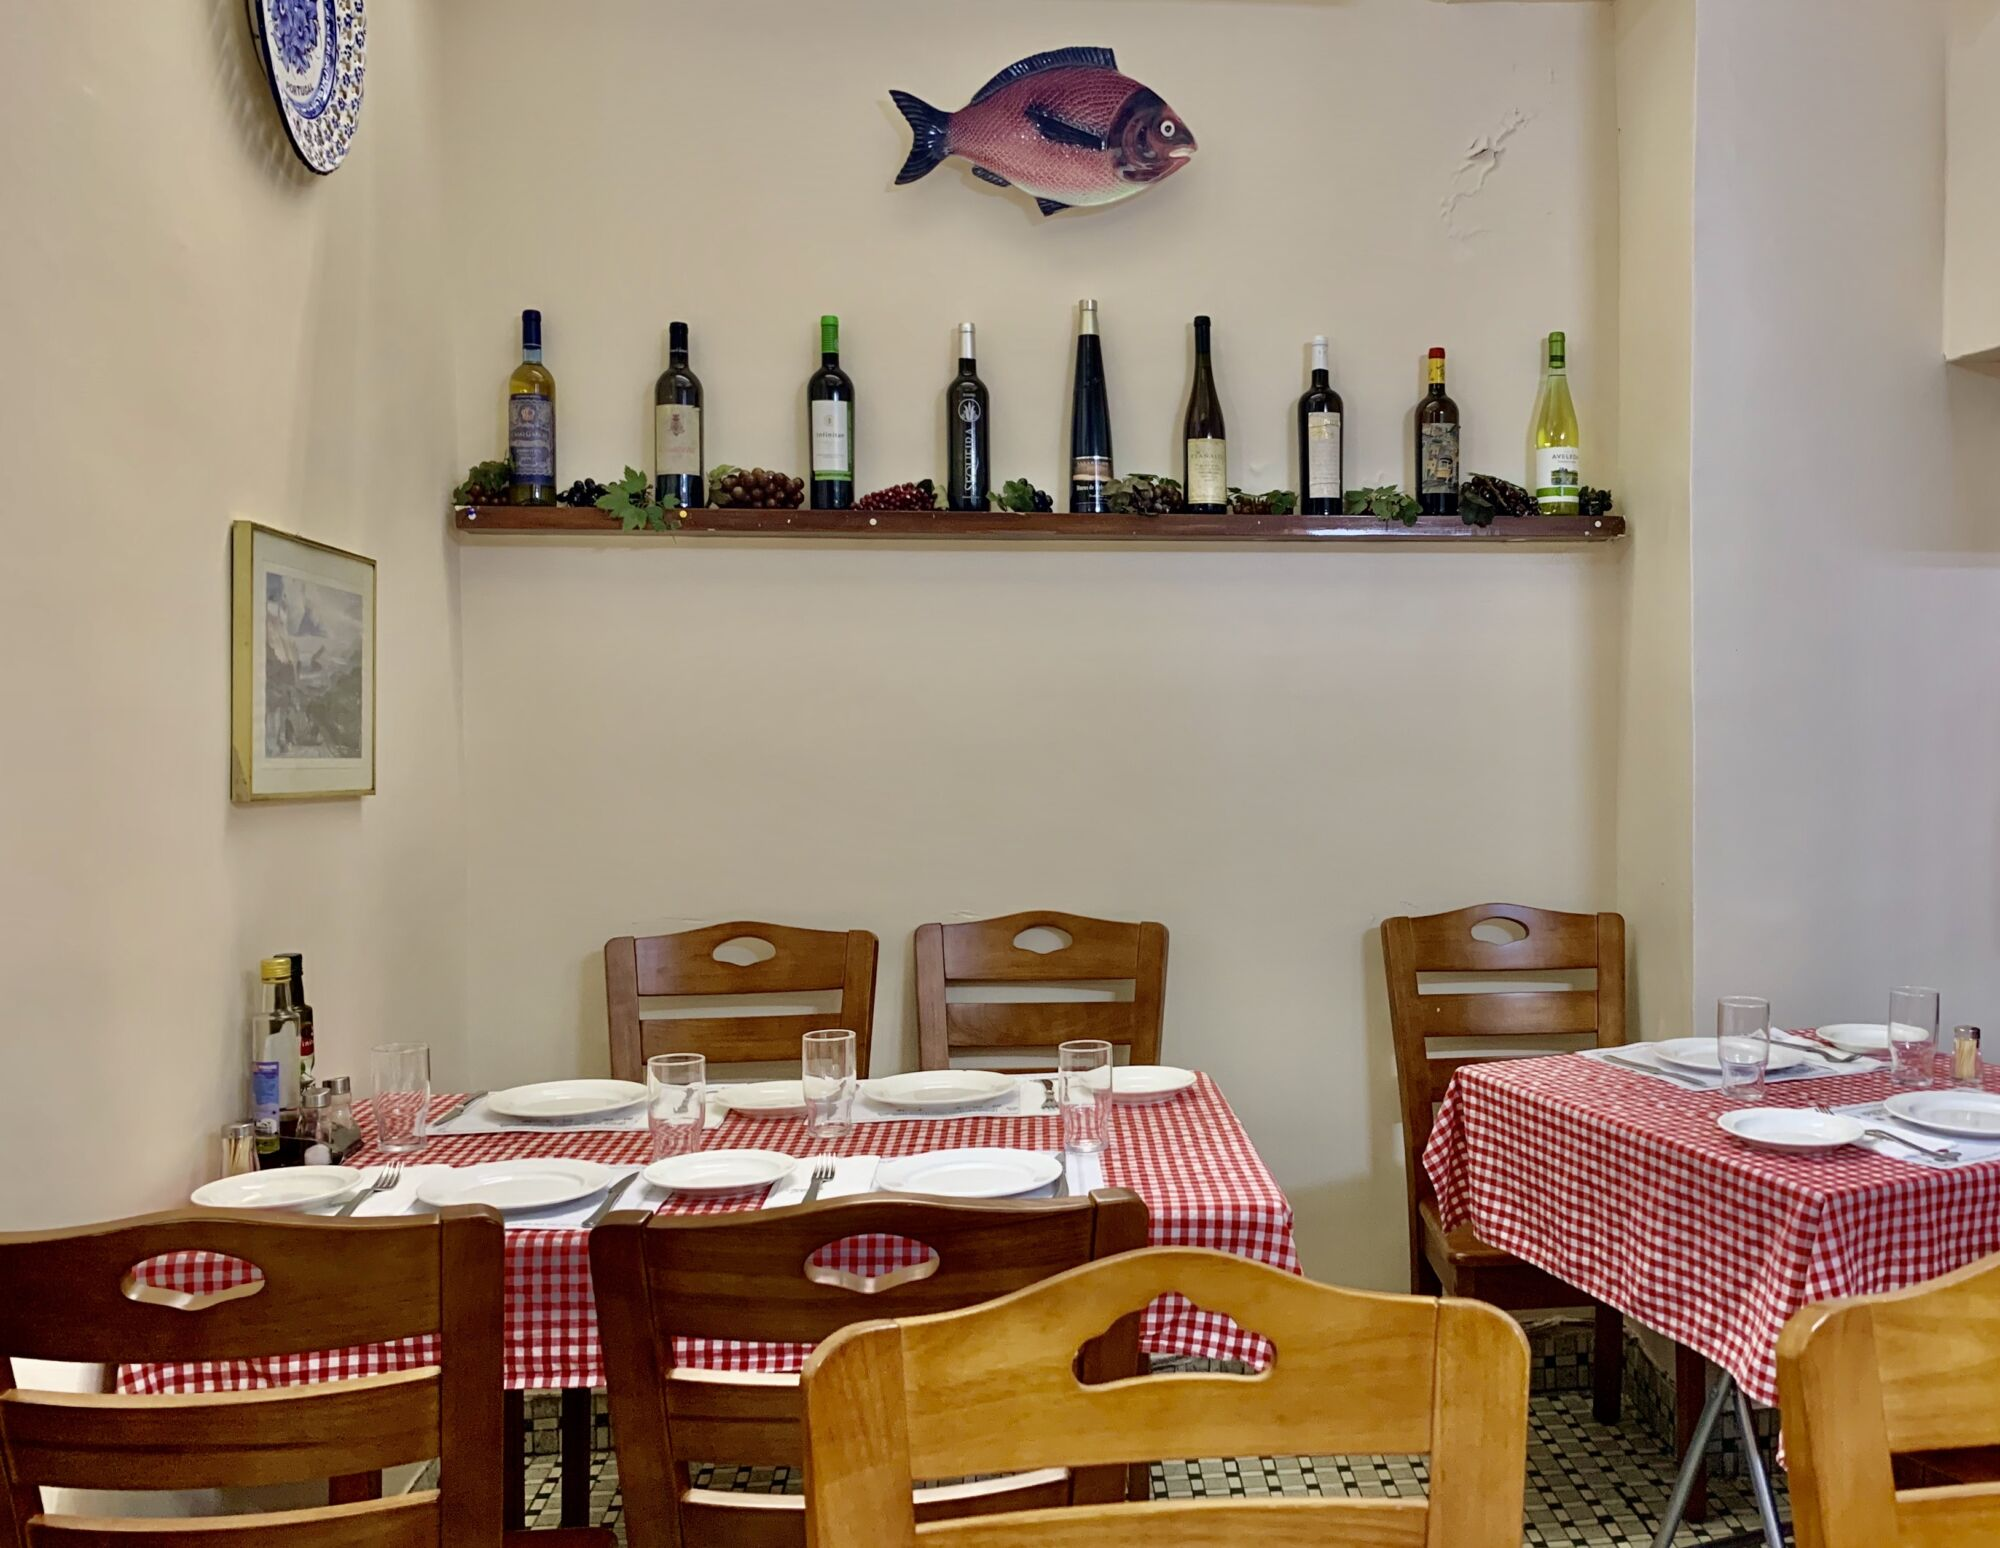 Petisqueira Interior Decorations and Bottles in the Wall Plus Tables with Chequered Cloths Macau Lifestyle